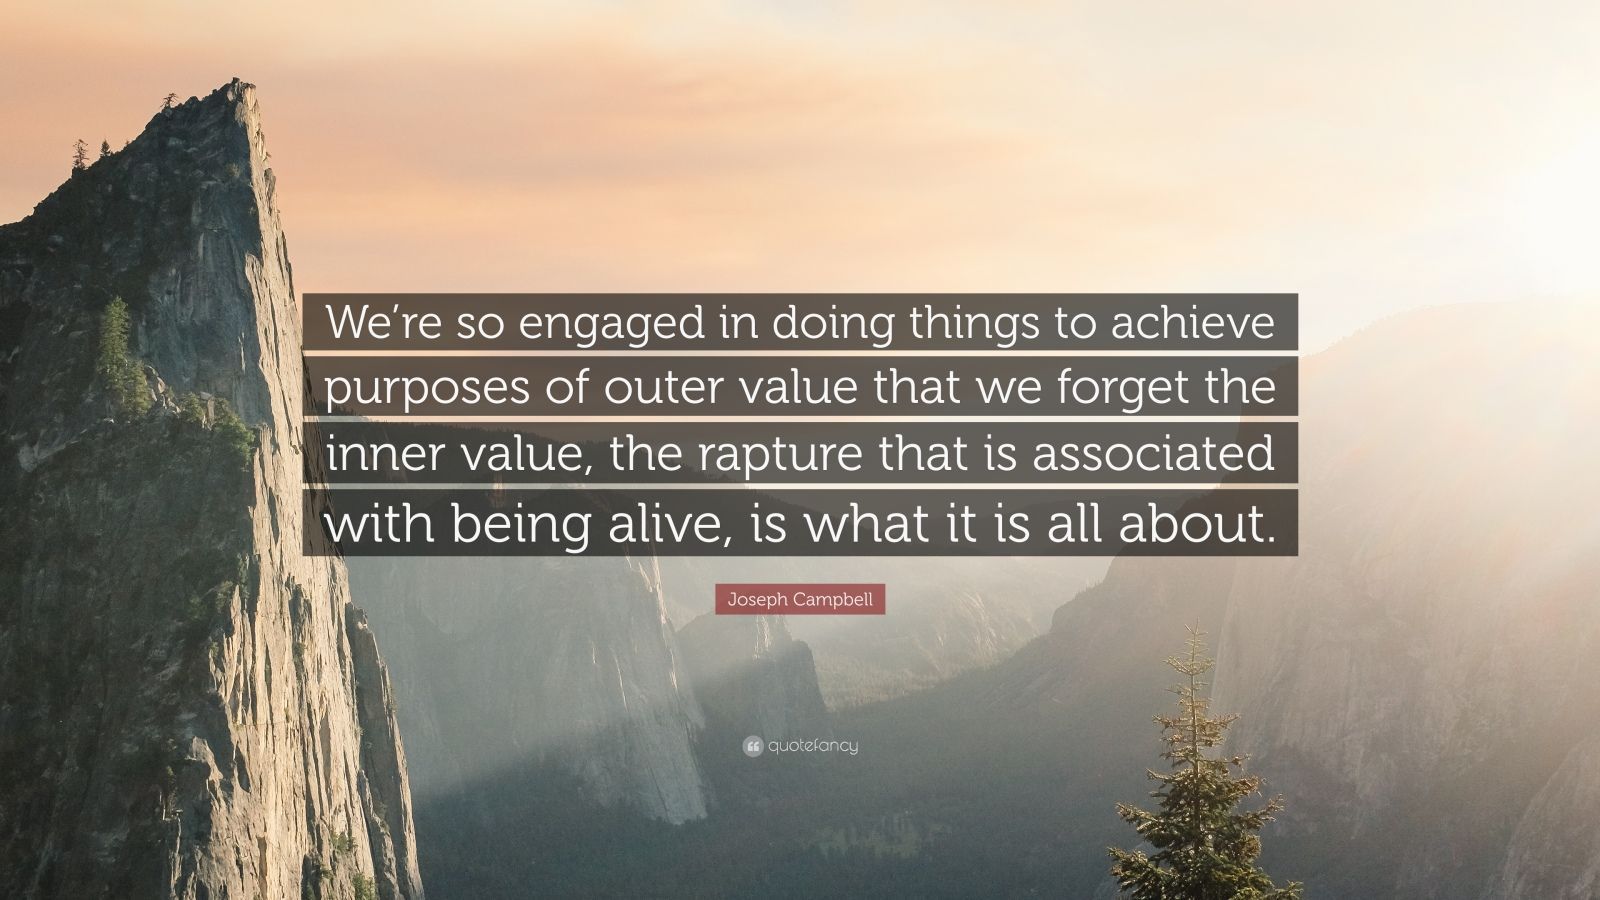 """Joseph Campbell Quote: """"We're so engaged in doing things to achieve purposes of outer value that we forget the inner value, the rapture that is associated with being alive, is what it is all about."""""""